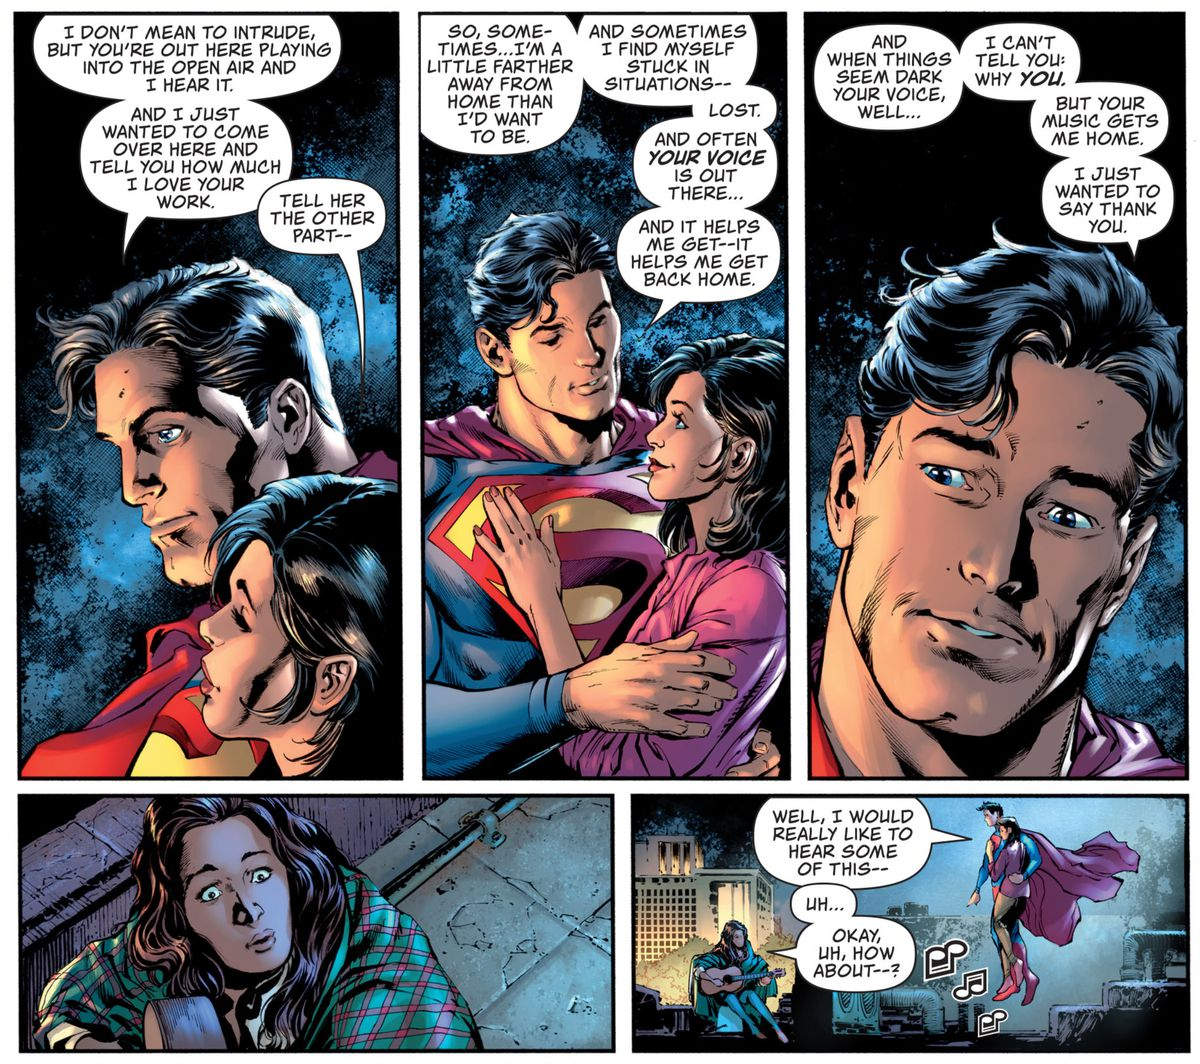 "Superman and Lois Lane visit a woman playing guitar on her Metropolis rooftop. Superman tells her that he can often hear her with his super hearing, and that her playing has helped him. ""Sometimes I find myself stuck in situations — lost. And often your voice is out there... and it helps me get — it helps me get back home,"" in Superman #28, DC Comics (2020)."